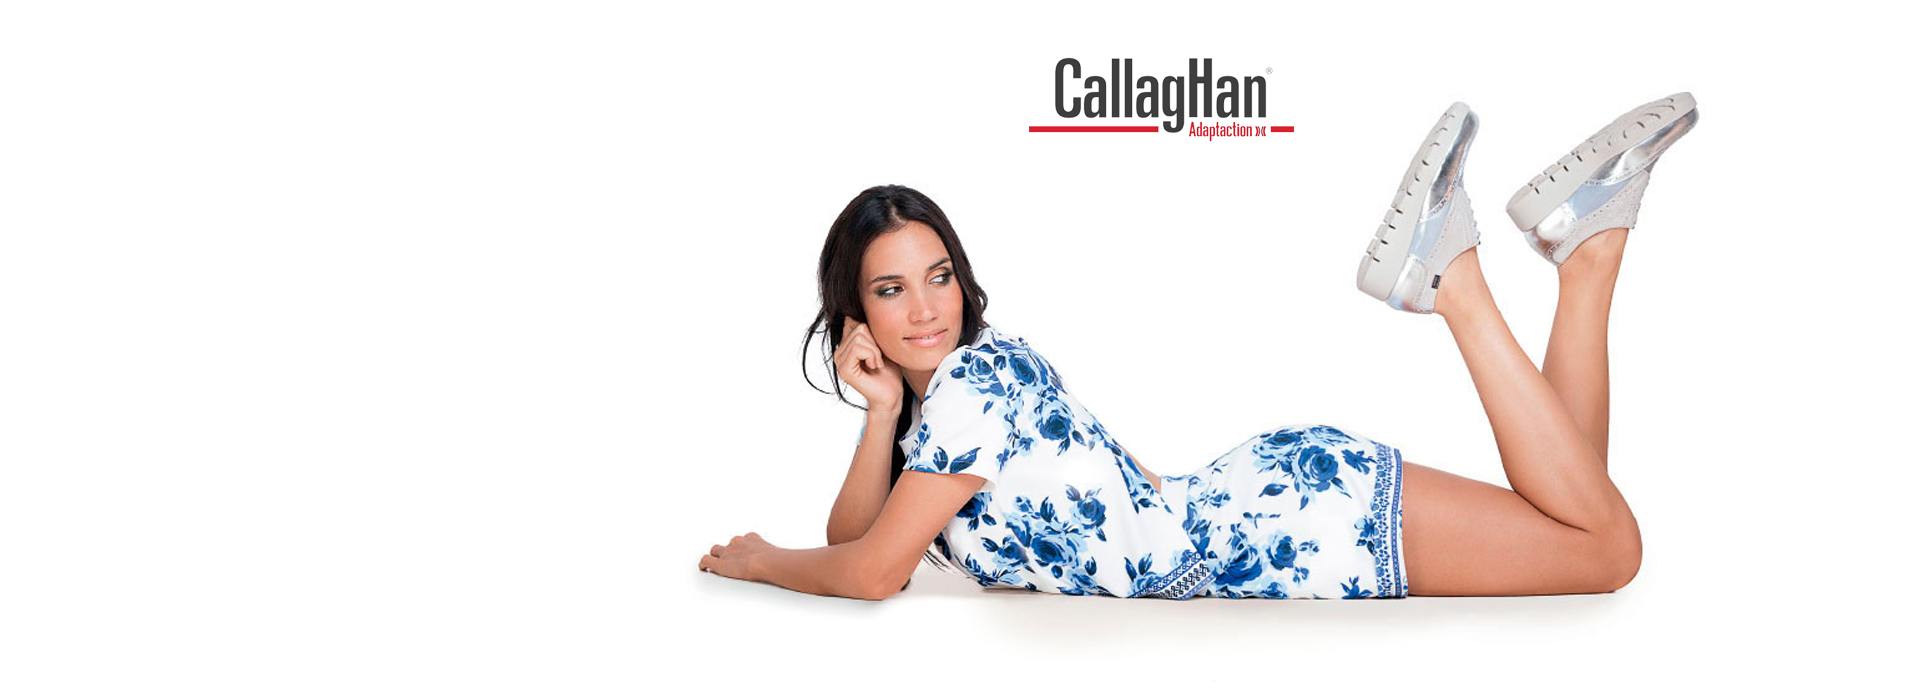 Calzature Callaghan